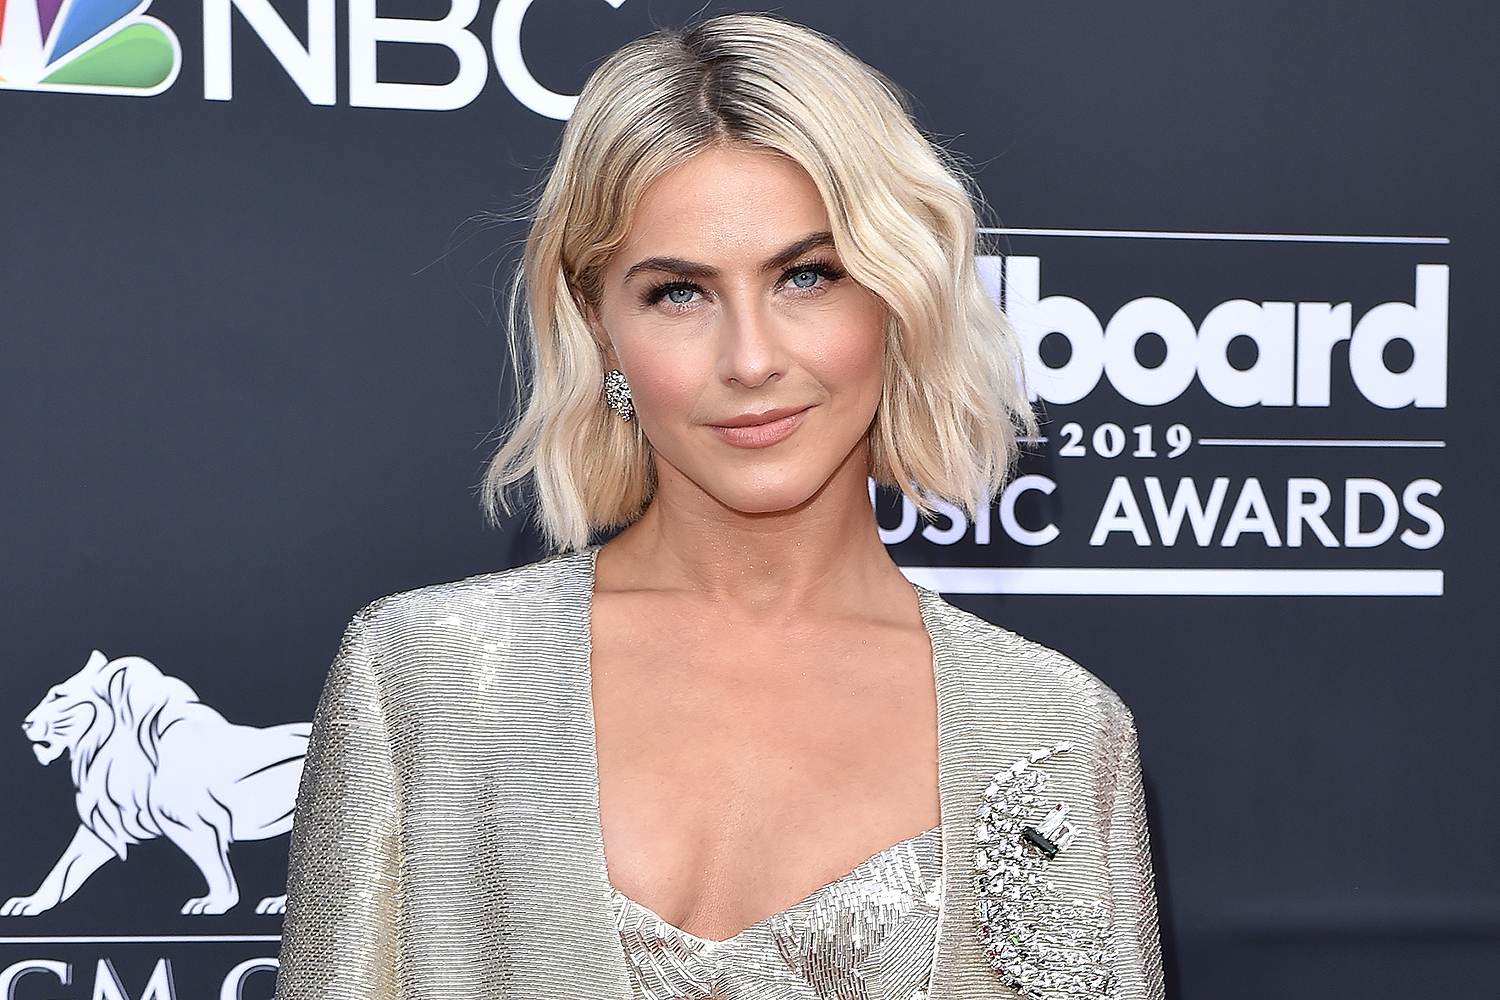 Julianne Hough Speaks Out After 'The Activist' Receives Criticism